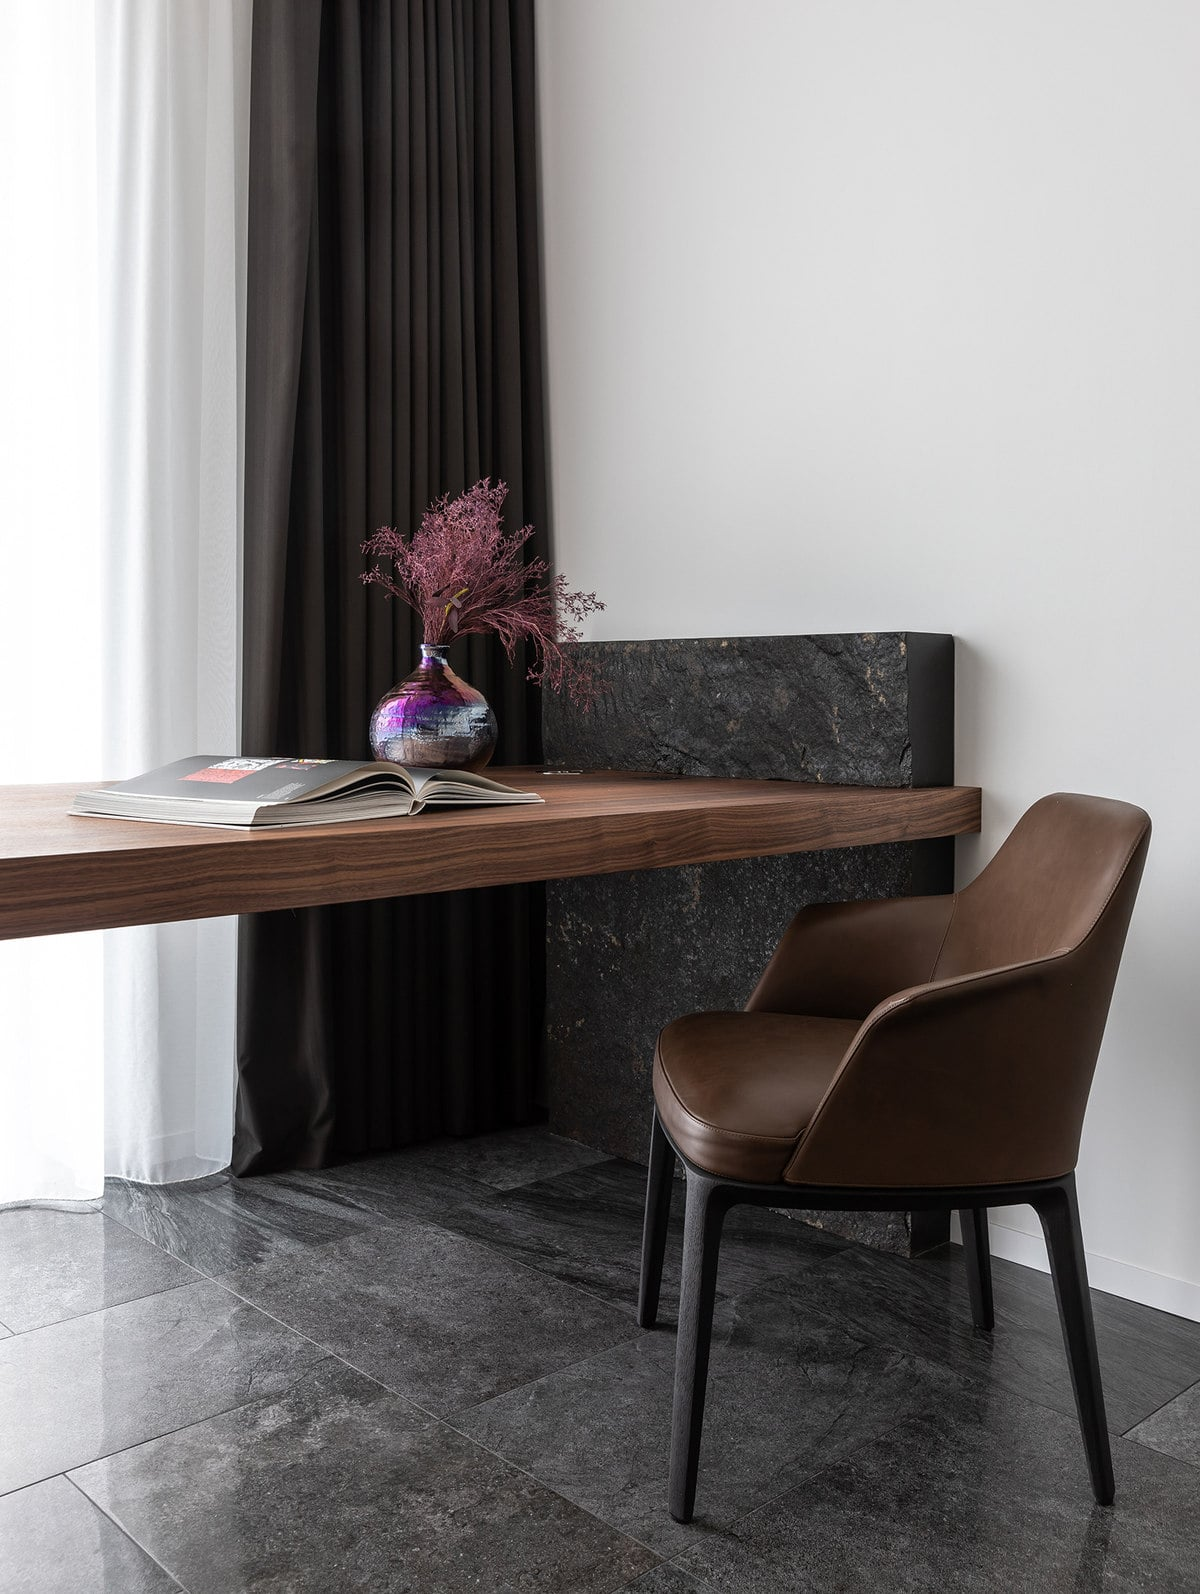 This close look at the office gives us a look at the built-in wooden desk supported by a black marble panel that blends perfectly with the flooring but contrasts the white wall.